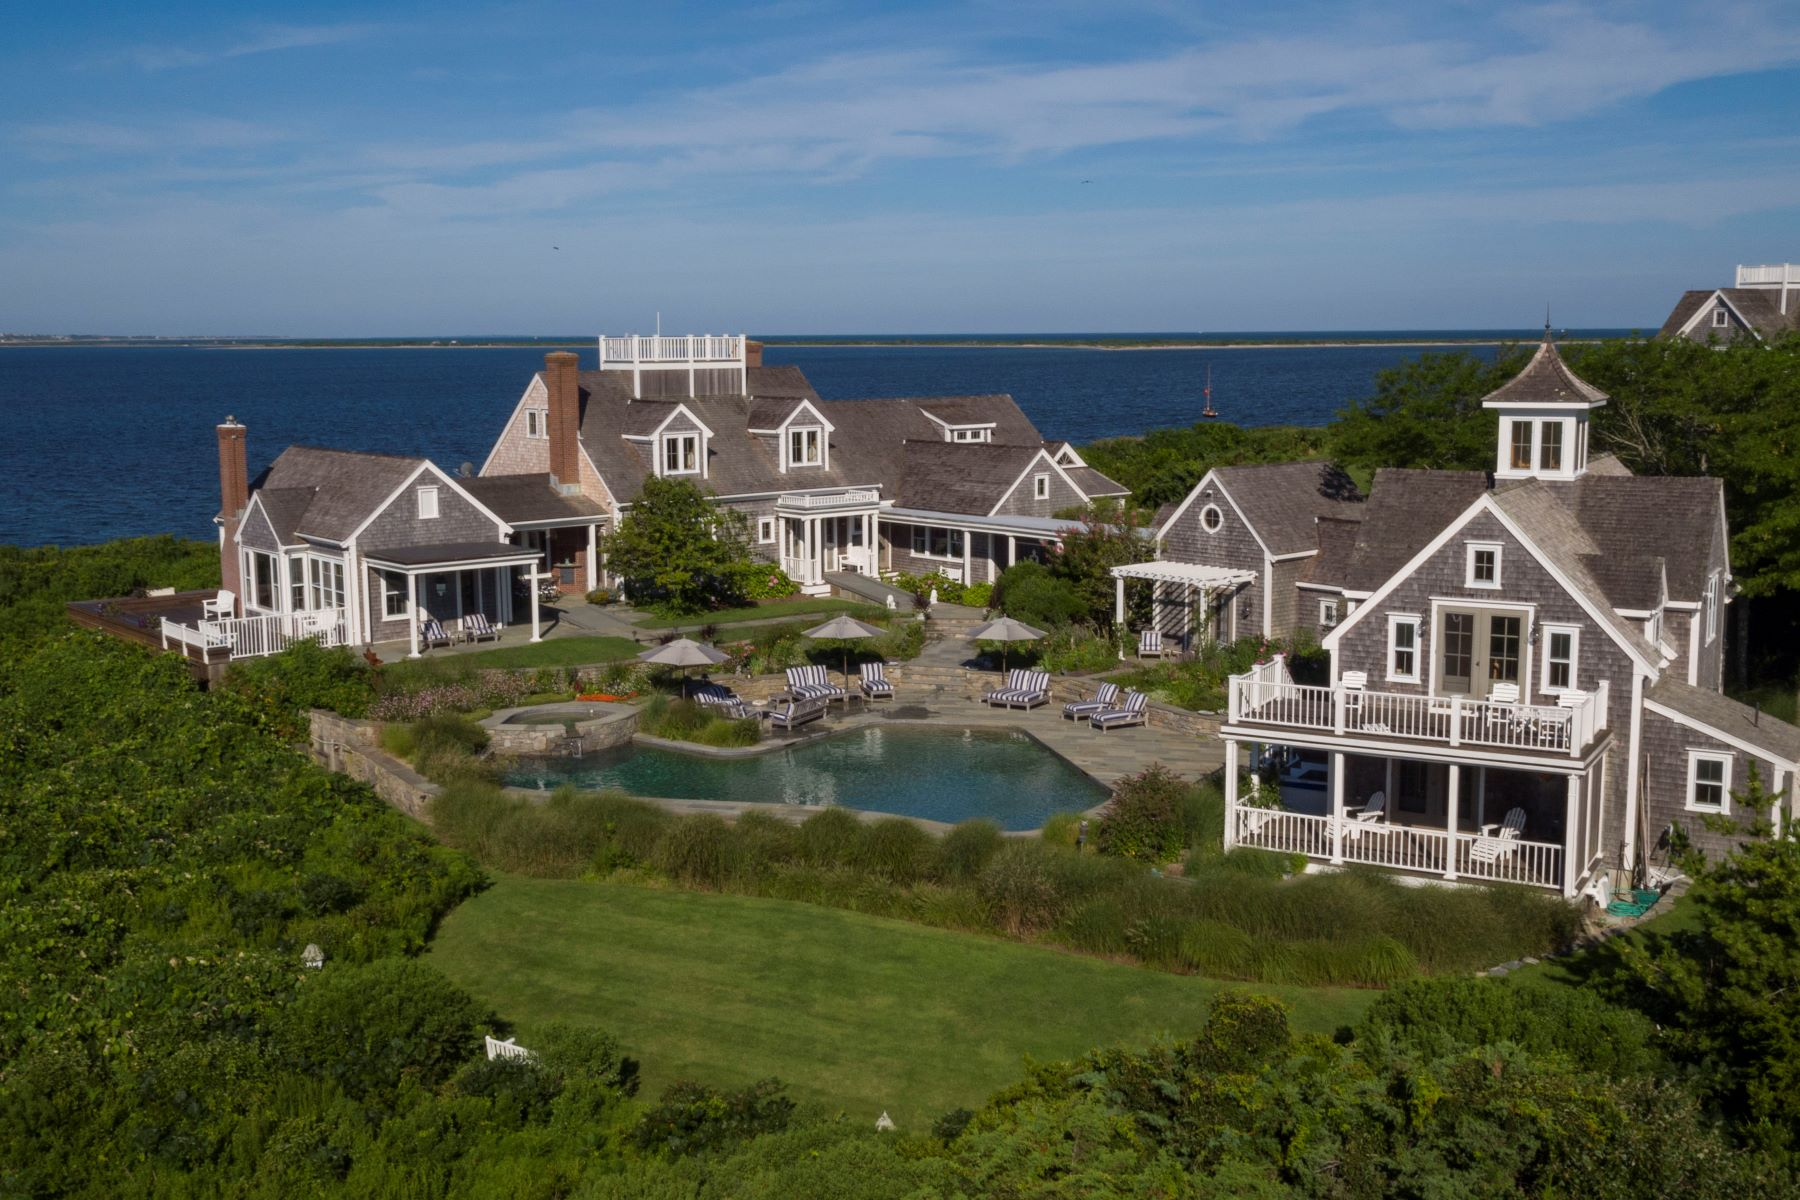 Maison unifamiliale pour l Vente à Entirely Unique Waterfront Estate 72 Pocomo Road 78 Pocomo Road Nantucket, Massachusetts 02554 États-Unis